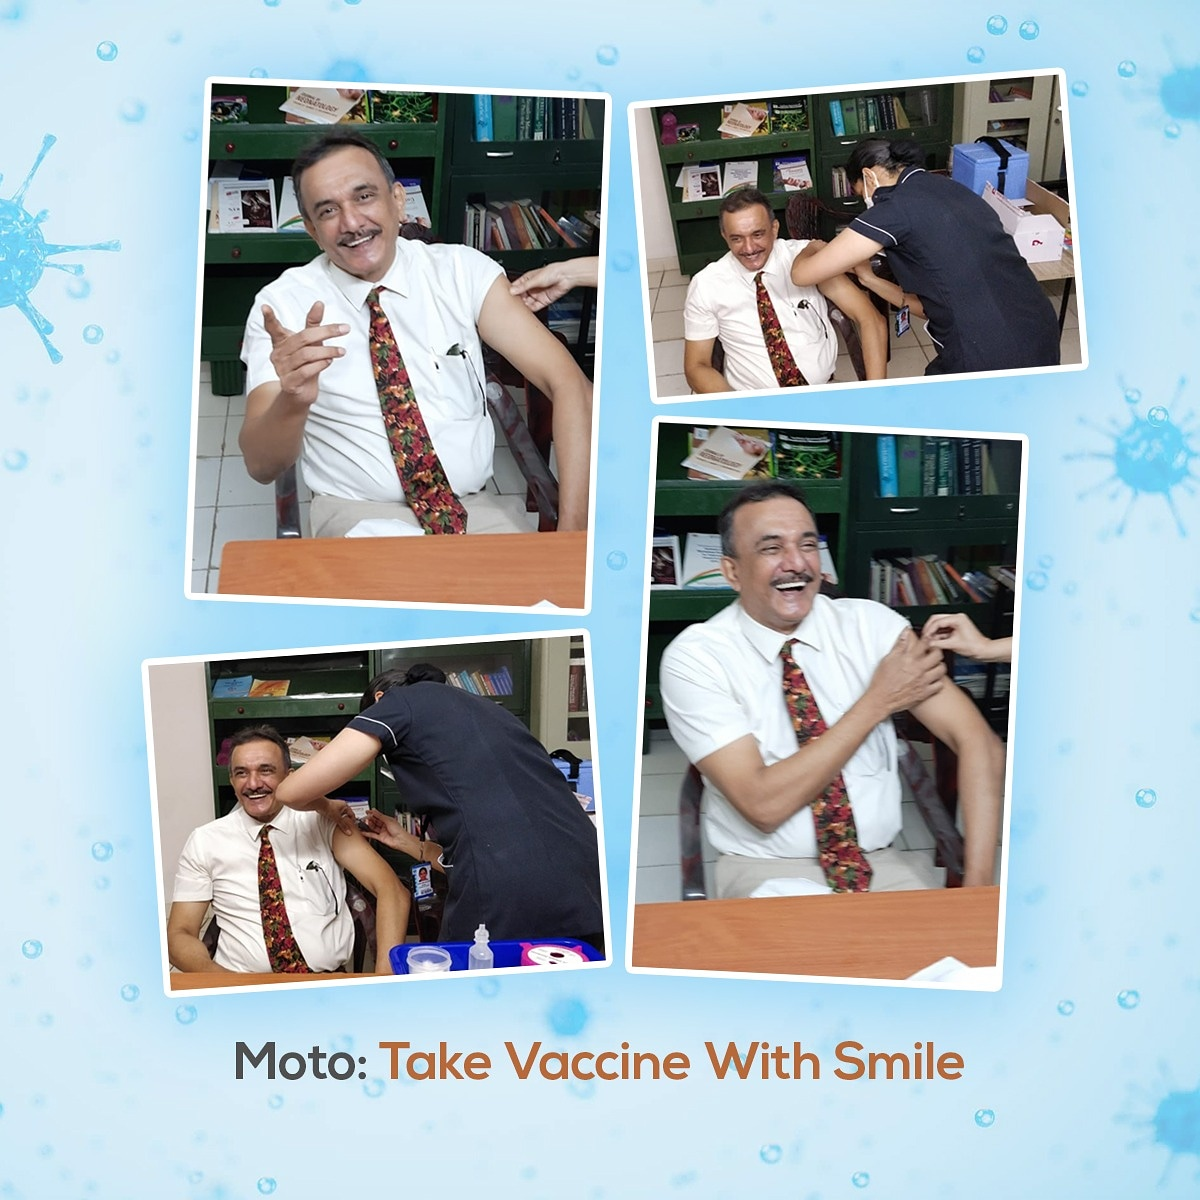 Just took covishield vaccine a few minutes back with a moto take Vaccine with a smile 😊😊  #vaccination #vaccinationtime  #covid19 #moto #vaccinewithsmile #covishield https://t.co/RbnyAXjzW2